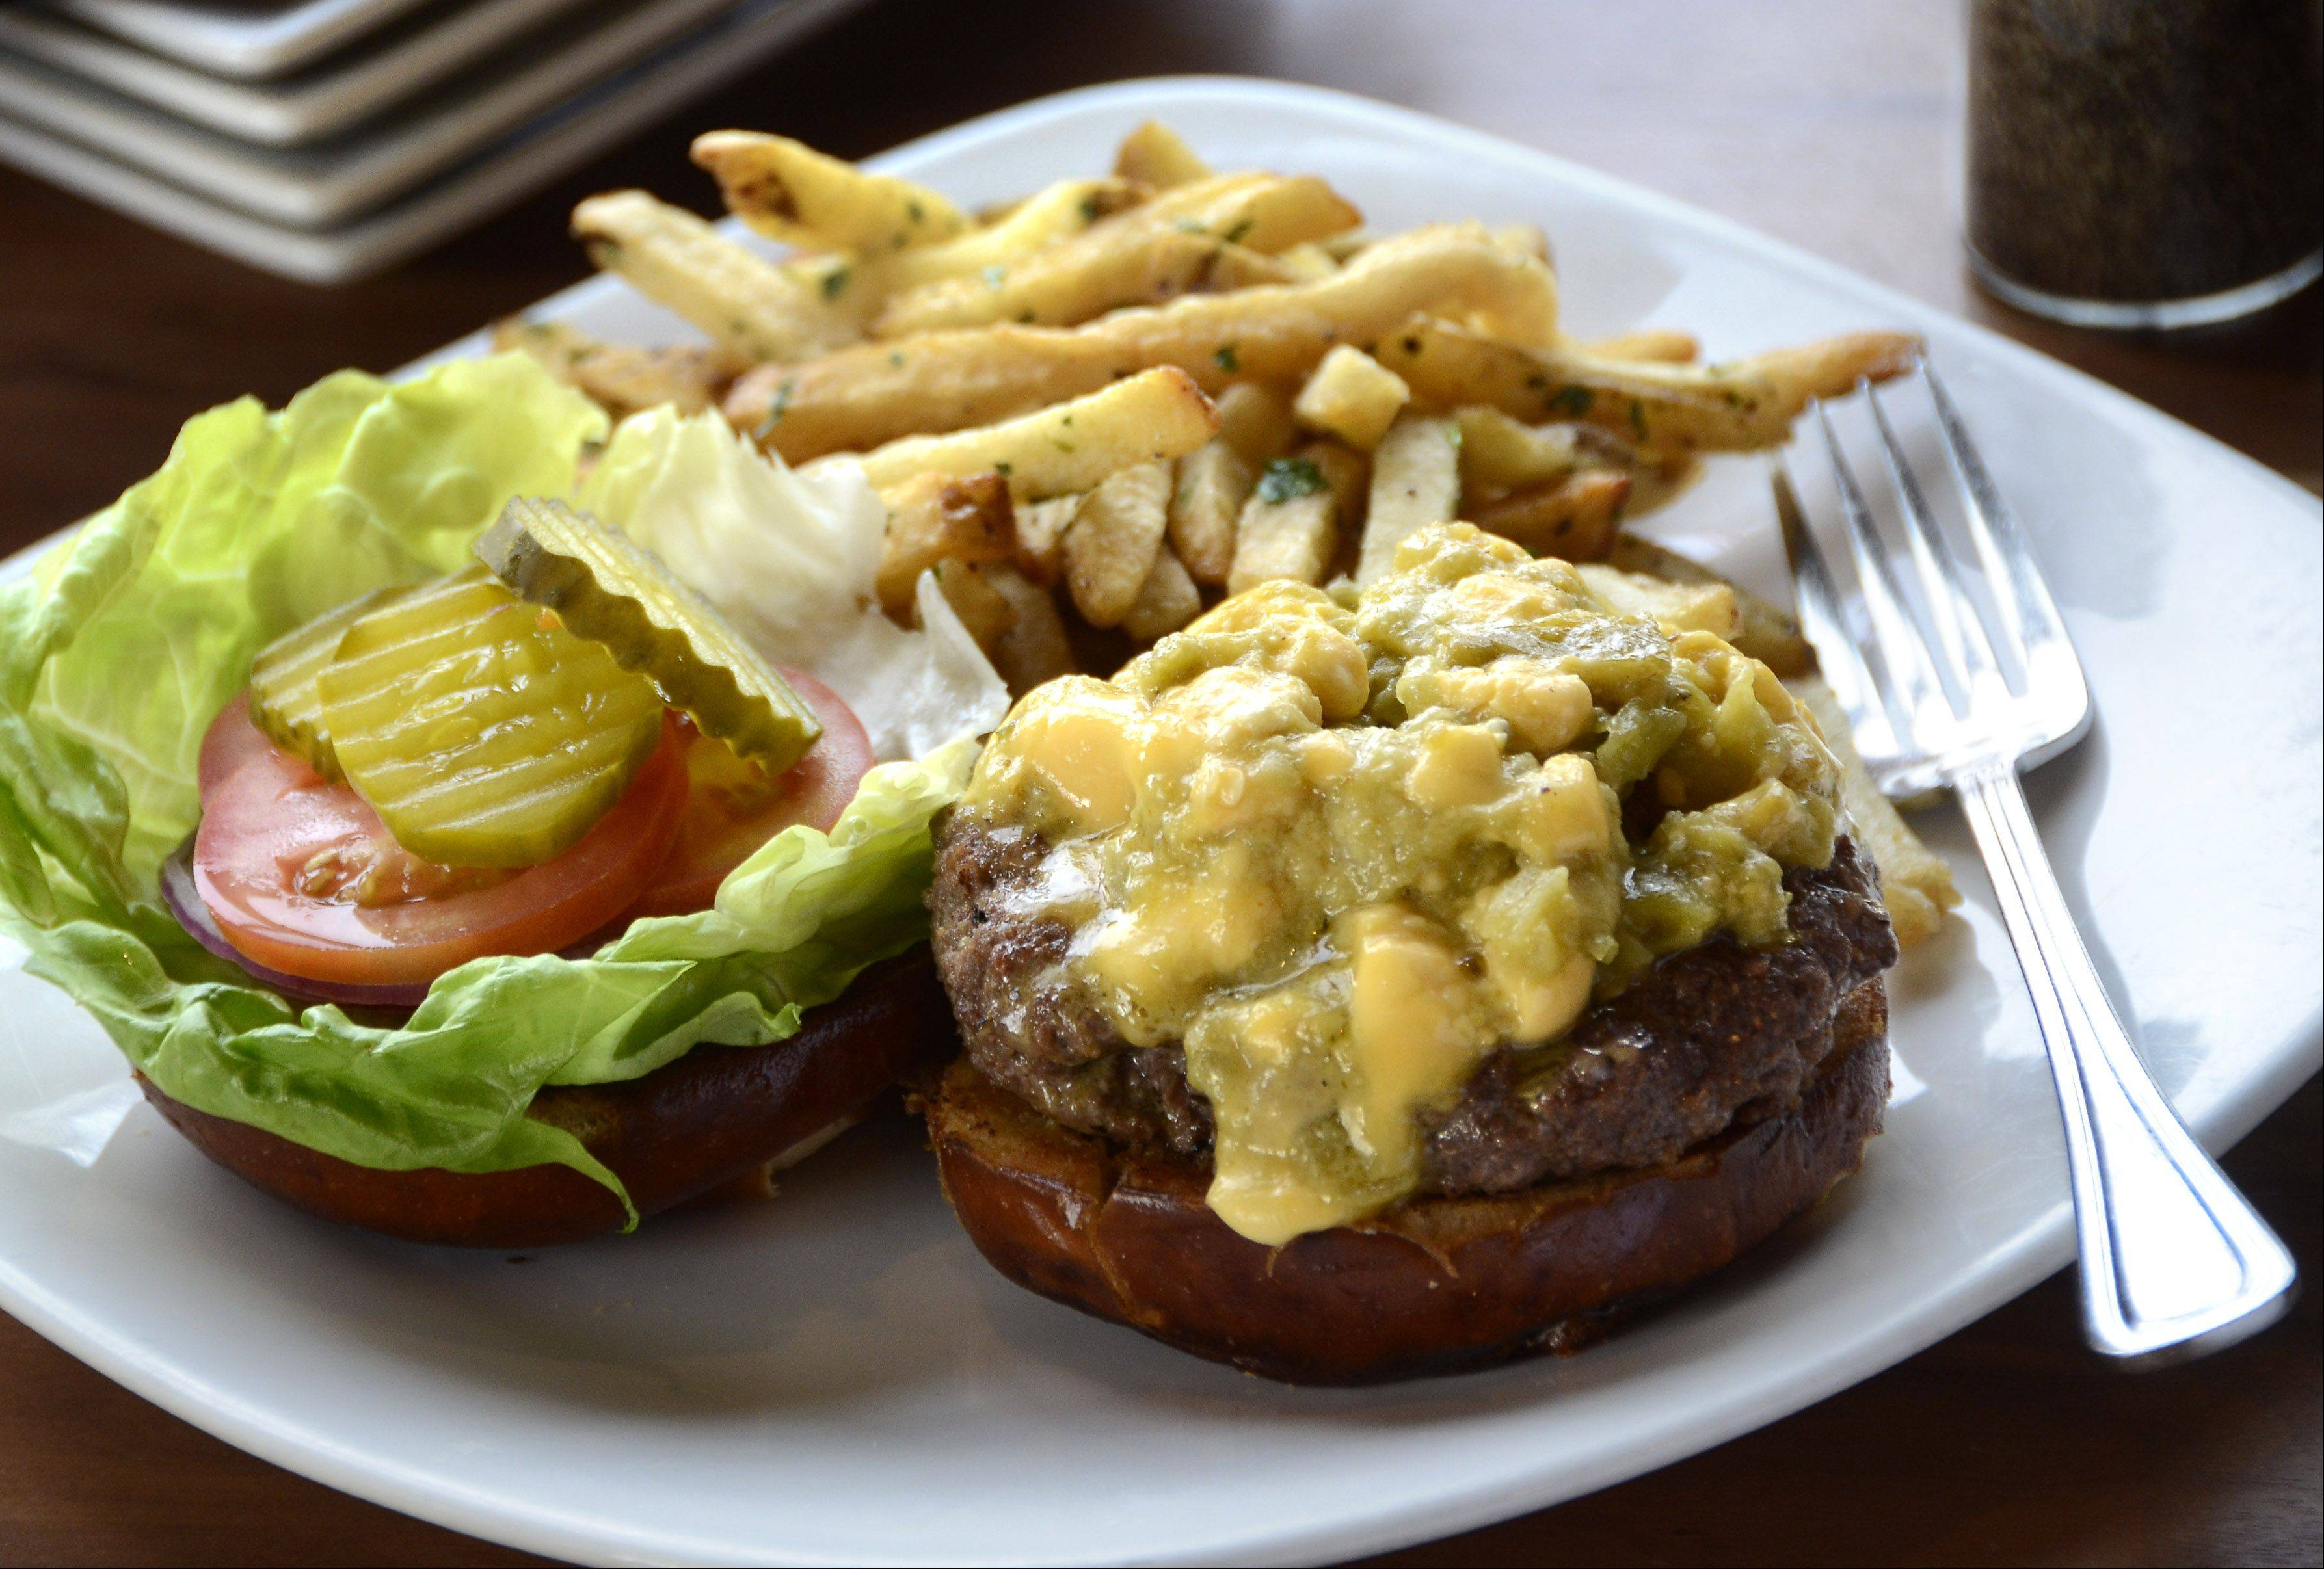 The Green Chili Burger comes stuffed with green chiles and cheese curds at Park Tavern in Rosemont.